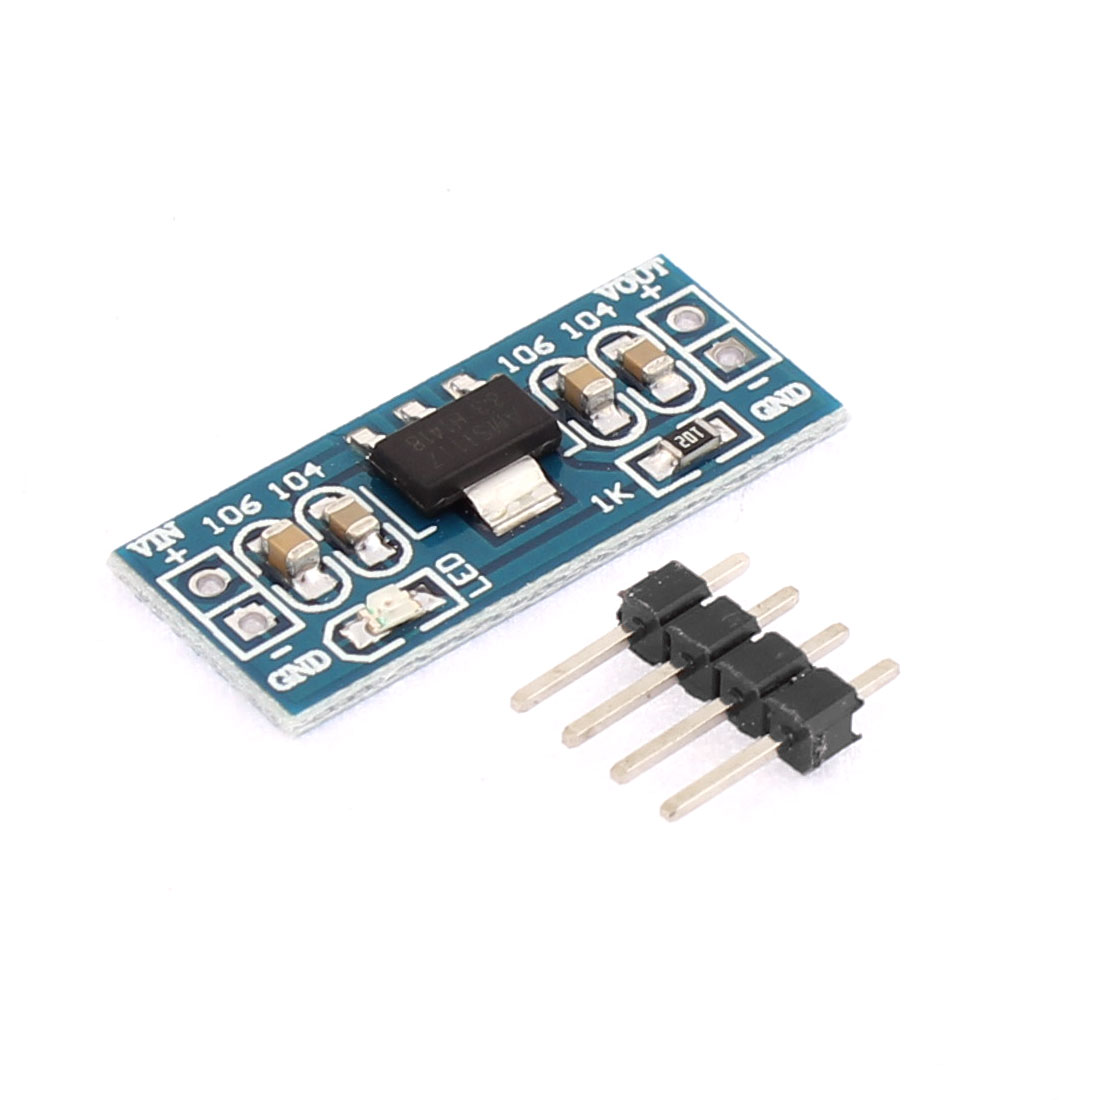 AMS1117-3.0 DC 3.3V Step-Down Voltage Power Supply Regulator Module Board Convertor Adpater